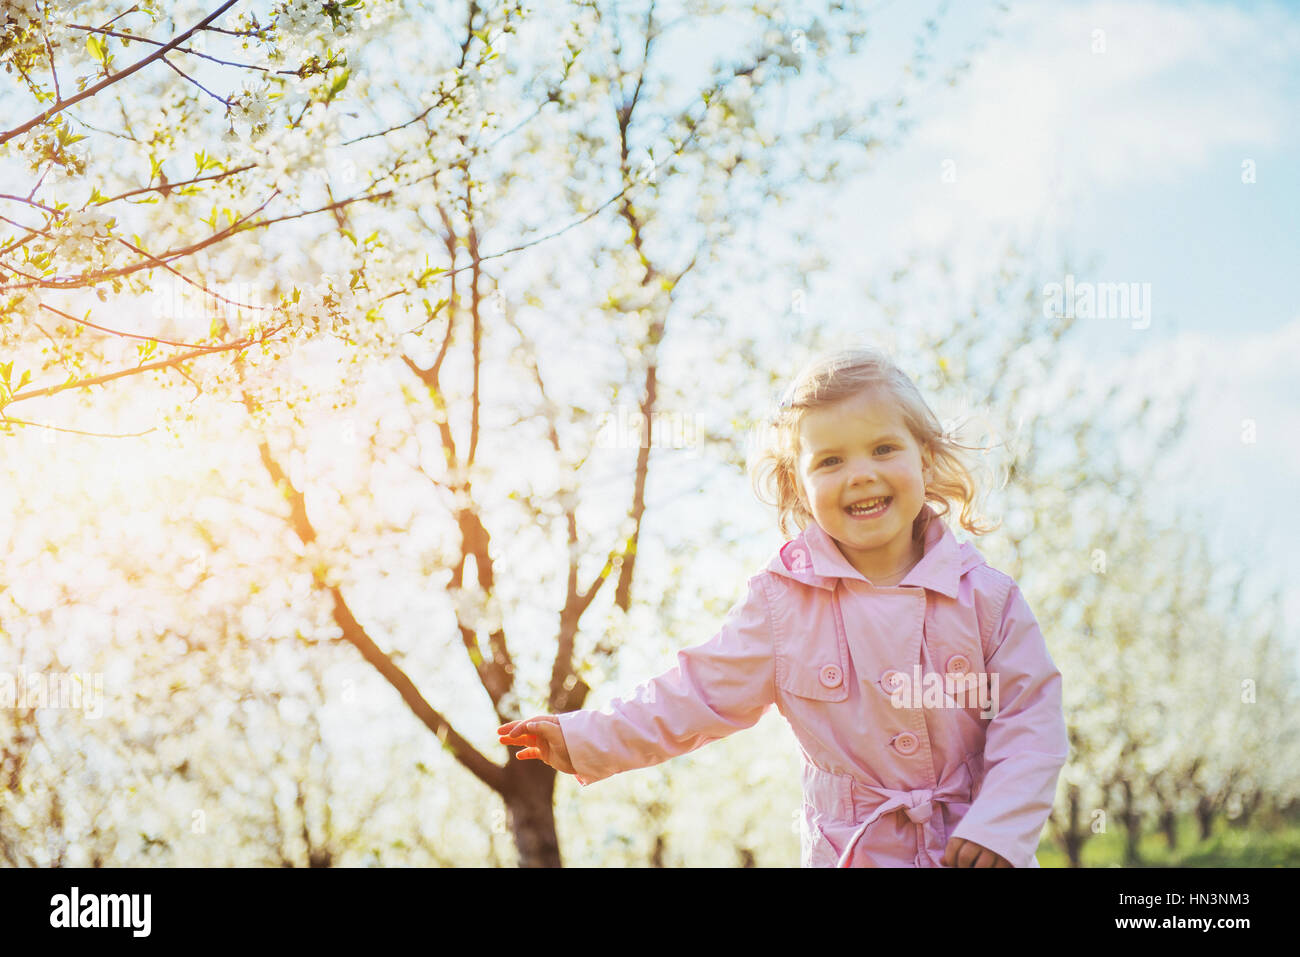 Child running outdoors blossom trees. - Stock Image